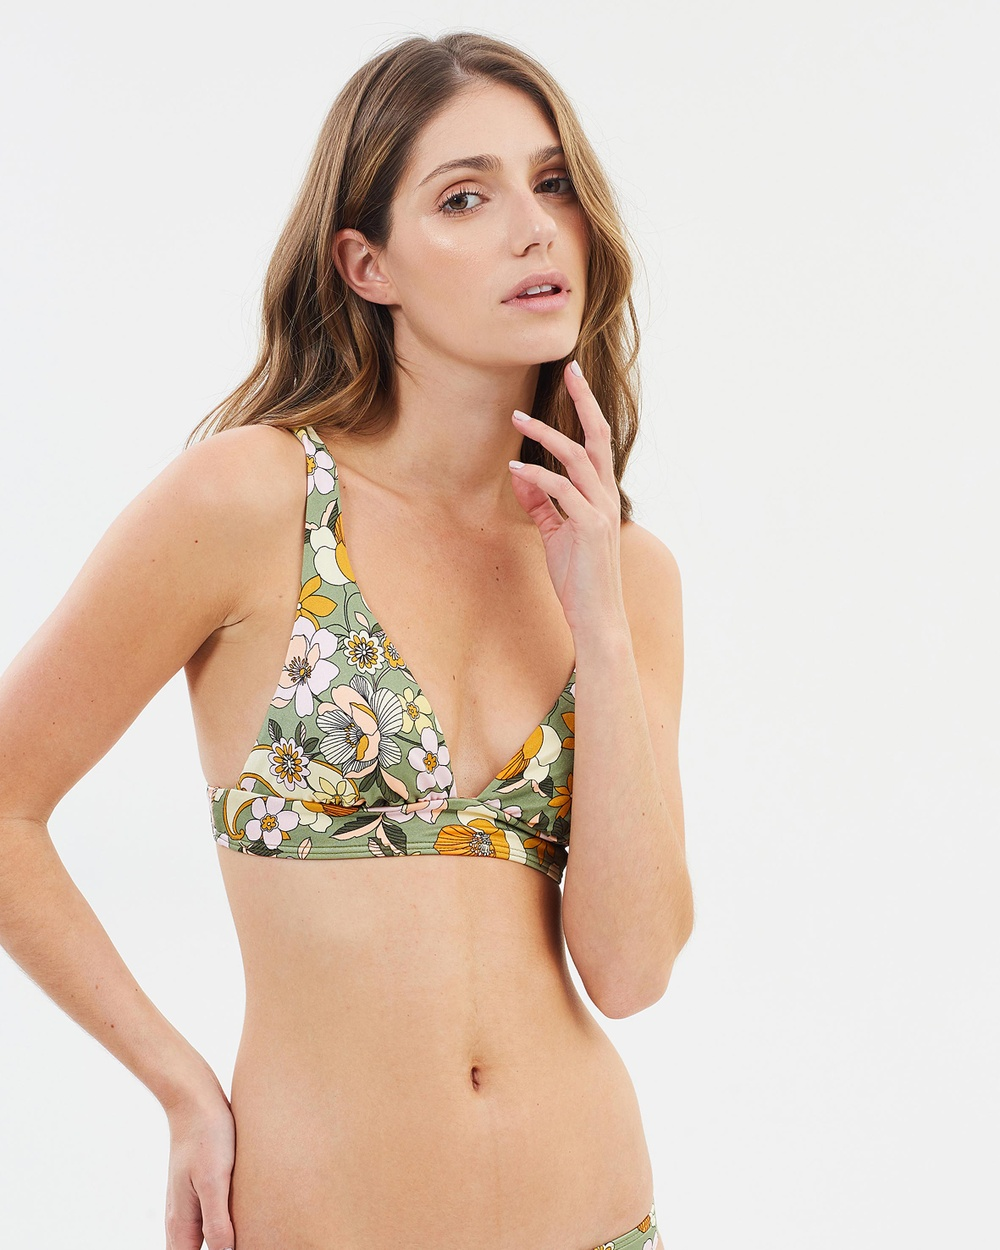 Billabong Caravan Elongated Tri Bikini Top Bikini Tops Mineral Gree Caravan Elongated Tri Bikini Top